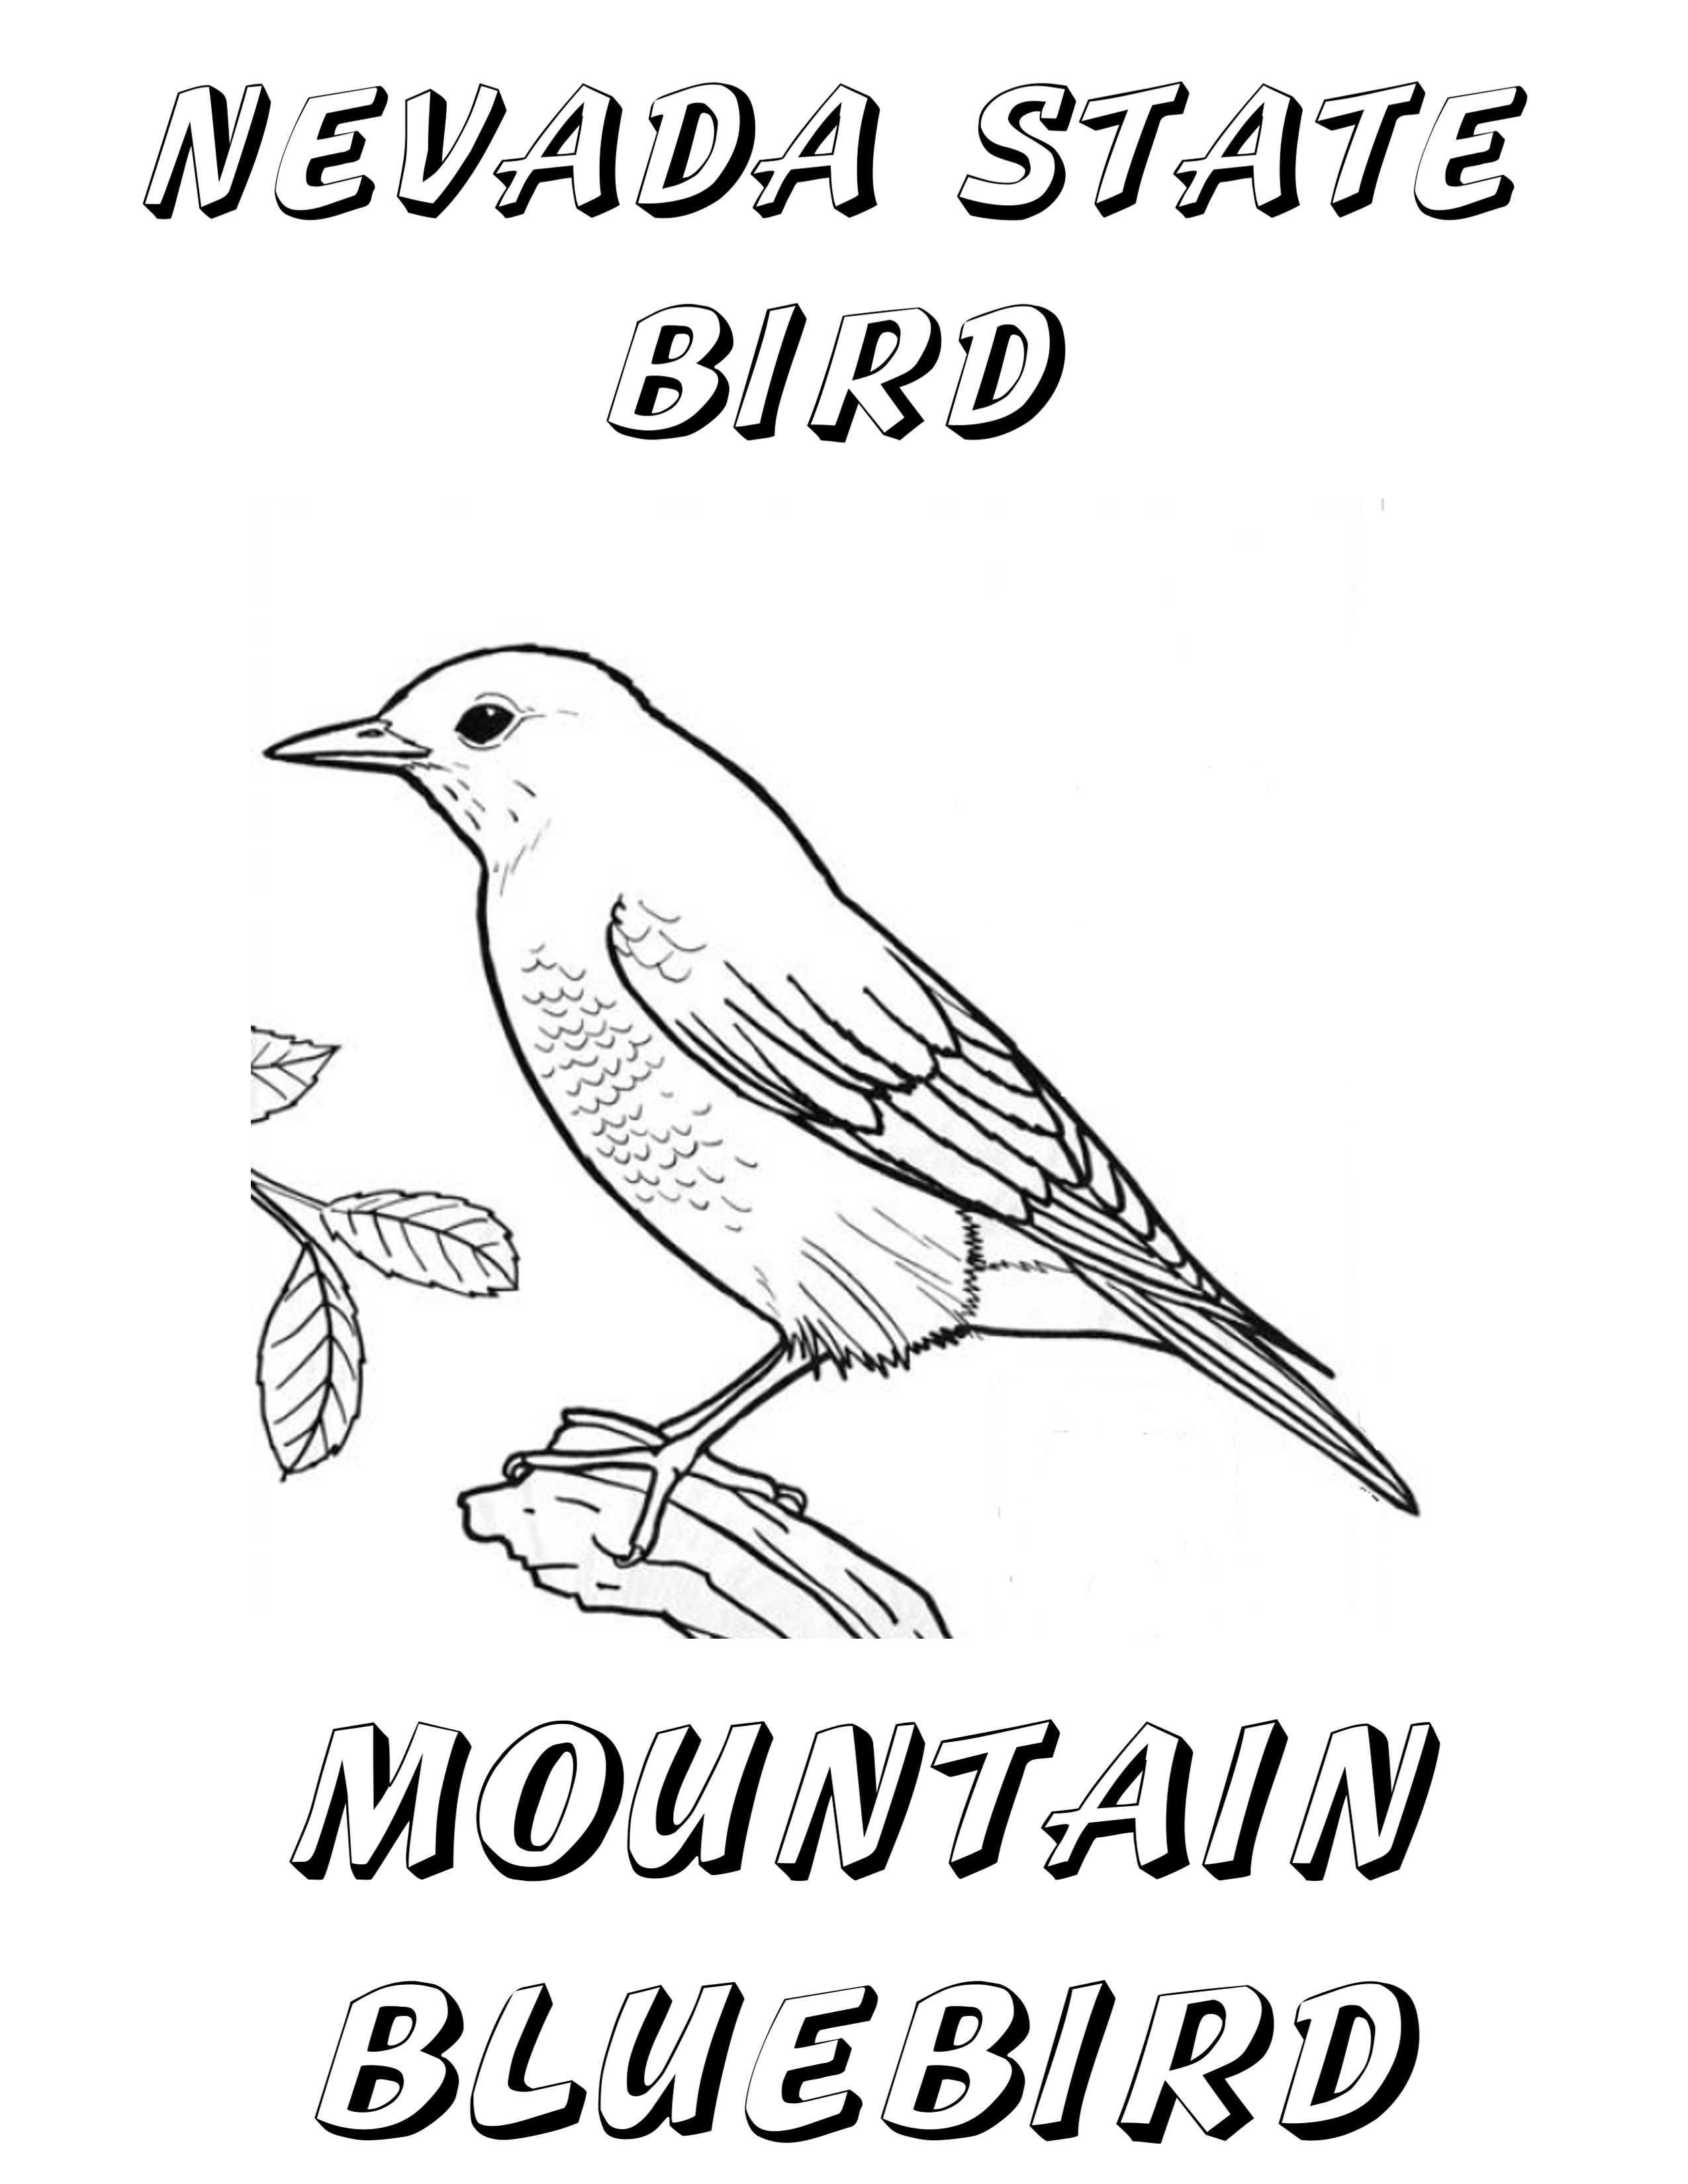 Nevada State Bird Coloring Page | School Project Ideas | Pinterest